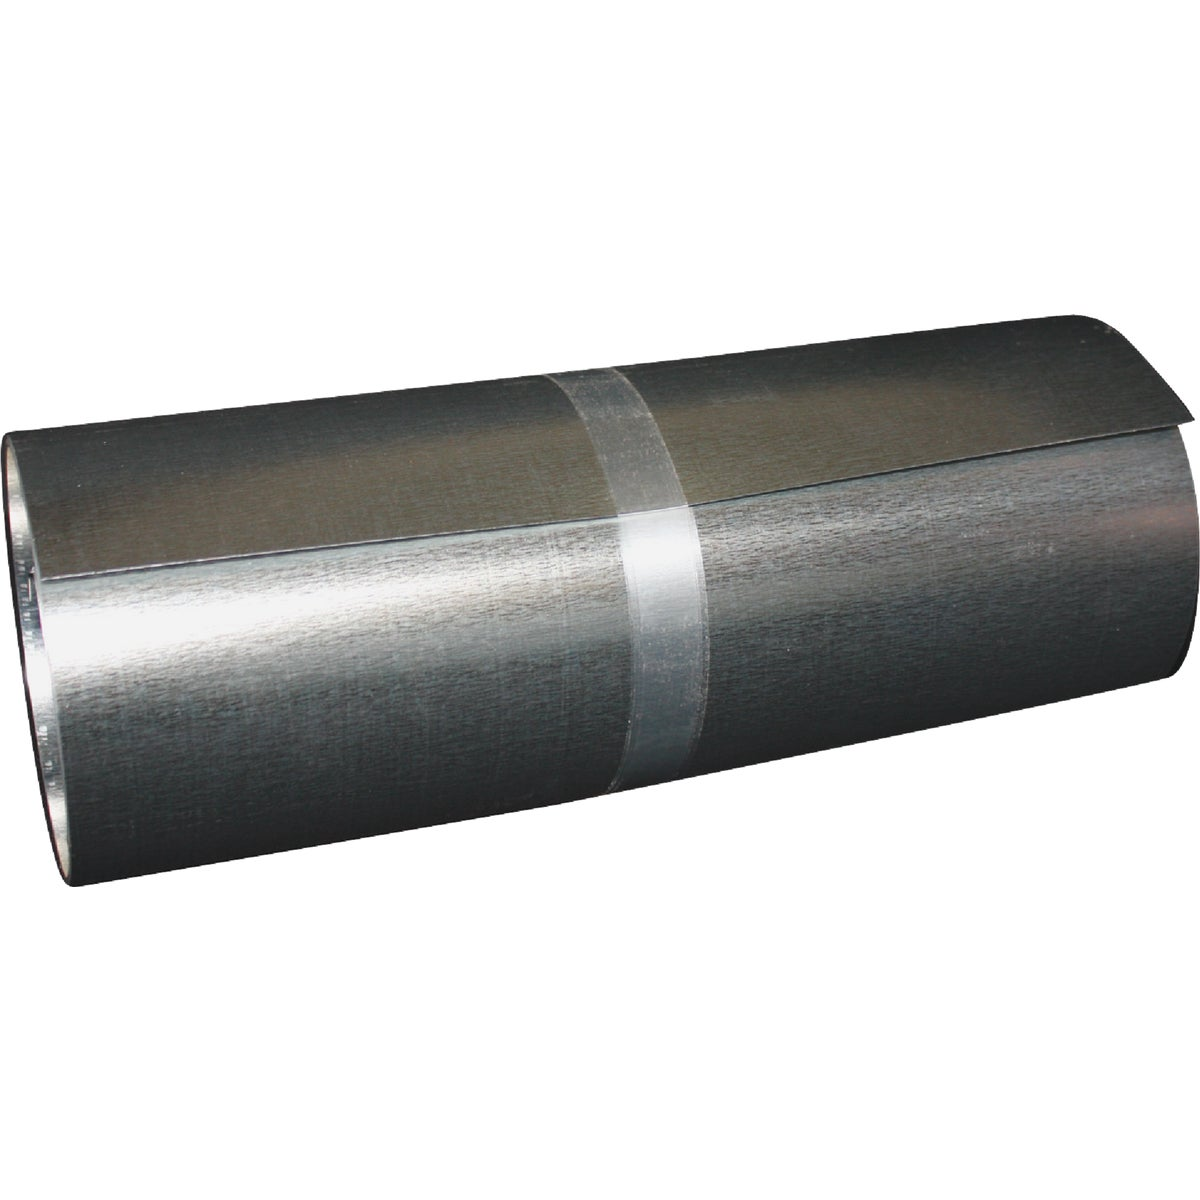 "8""X25' GALV ROLL VALLEY - 30025-GV10 by Klauer Mfg Co"